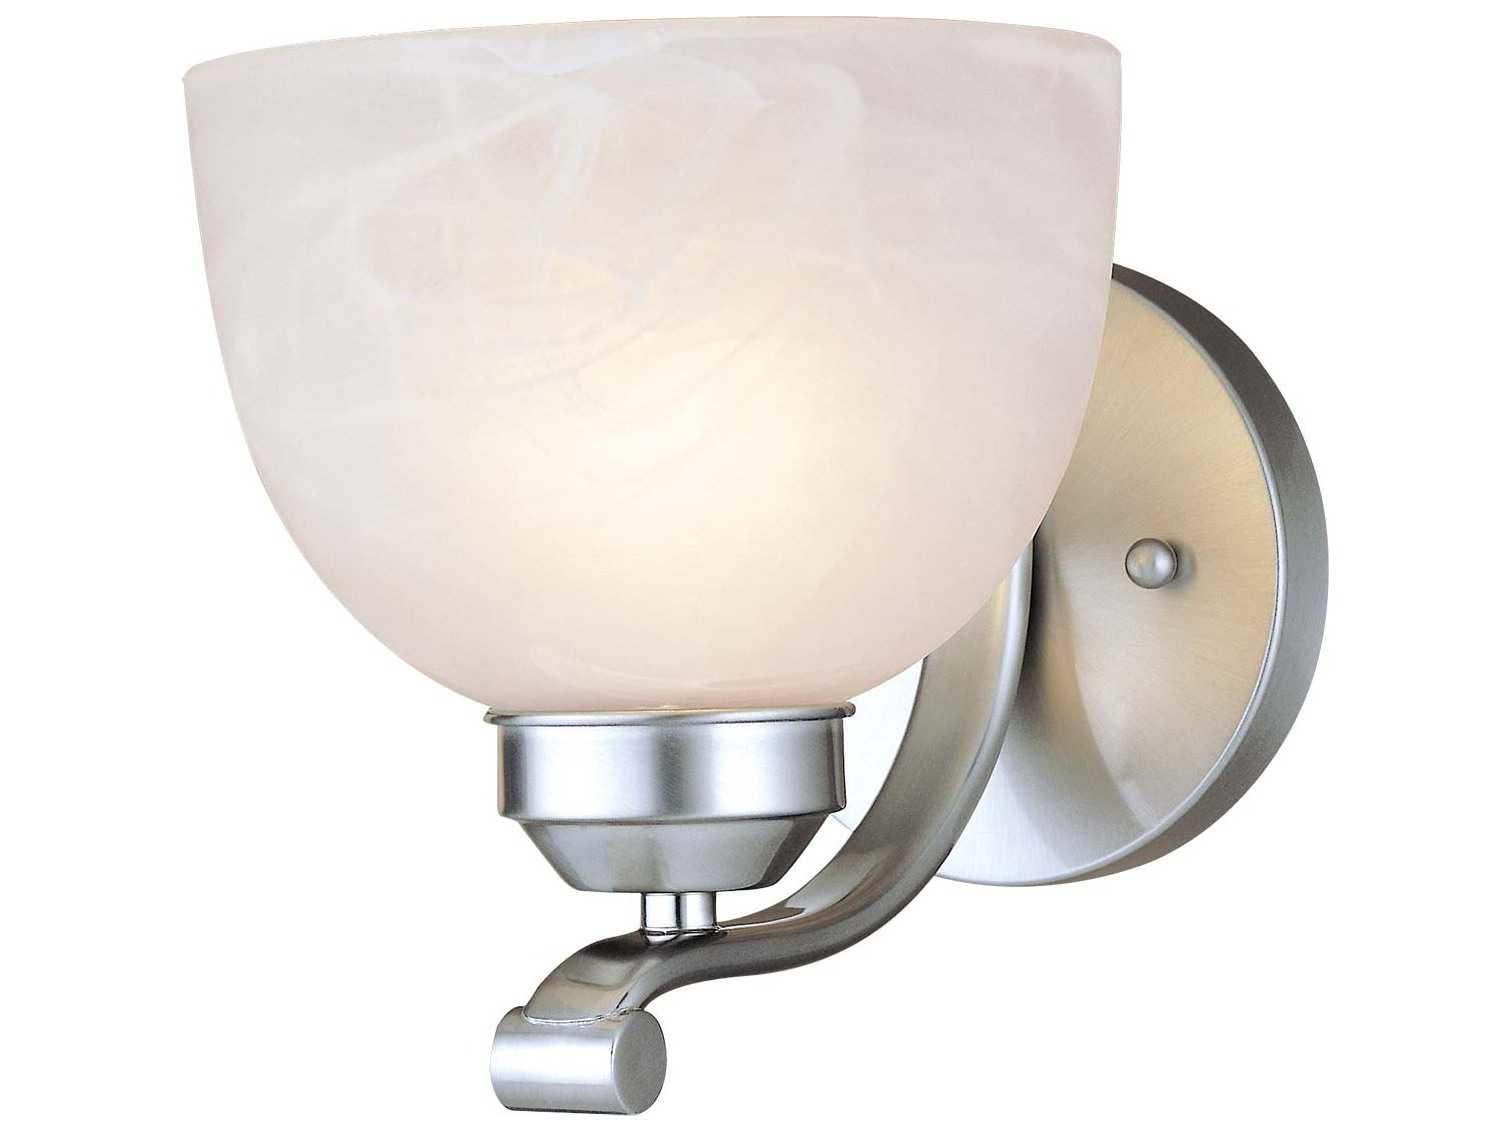 Minka Lavery Vanity Light In Brushed Nickel : Minka Lavery Paradox Brushed Nickel Medium Vanity Light MGO542184